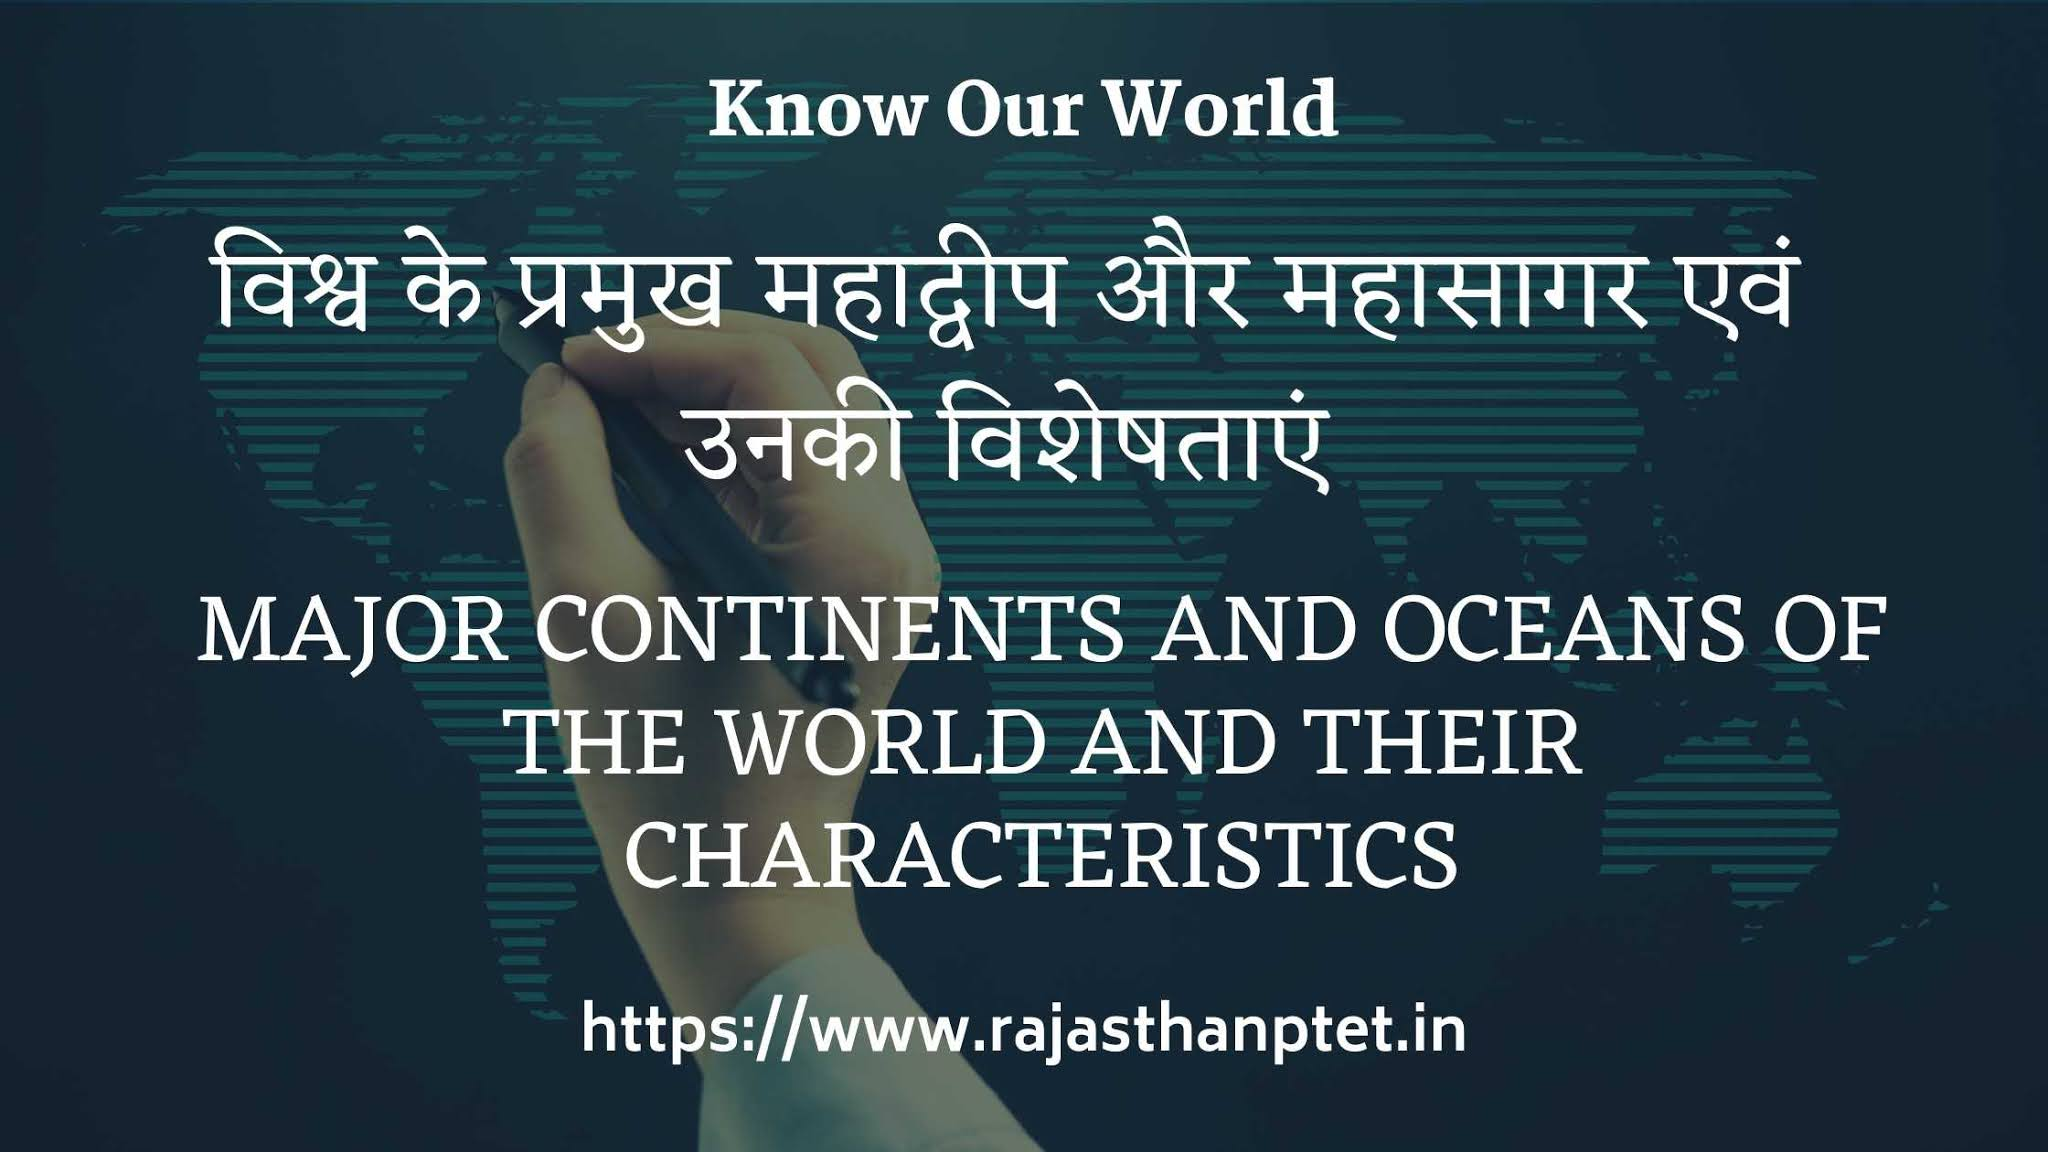 Major-continents-and-oceans-of-the-world-and-their-characteristics